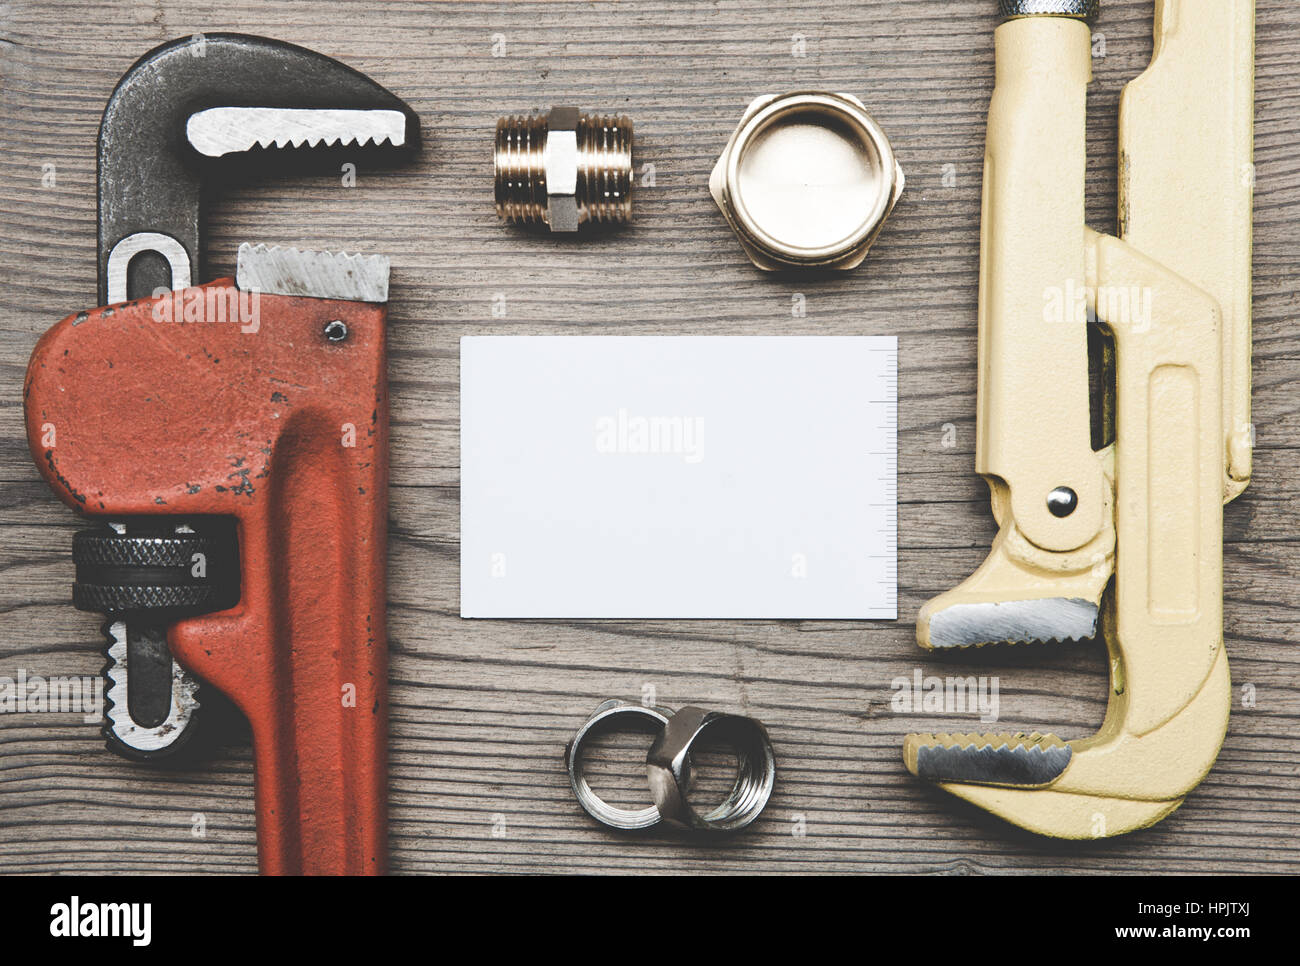 Pipes Plumbing Tools Fittings And Business Card On The Wooden